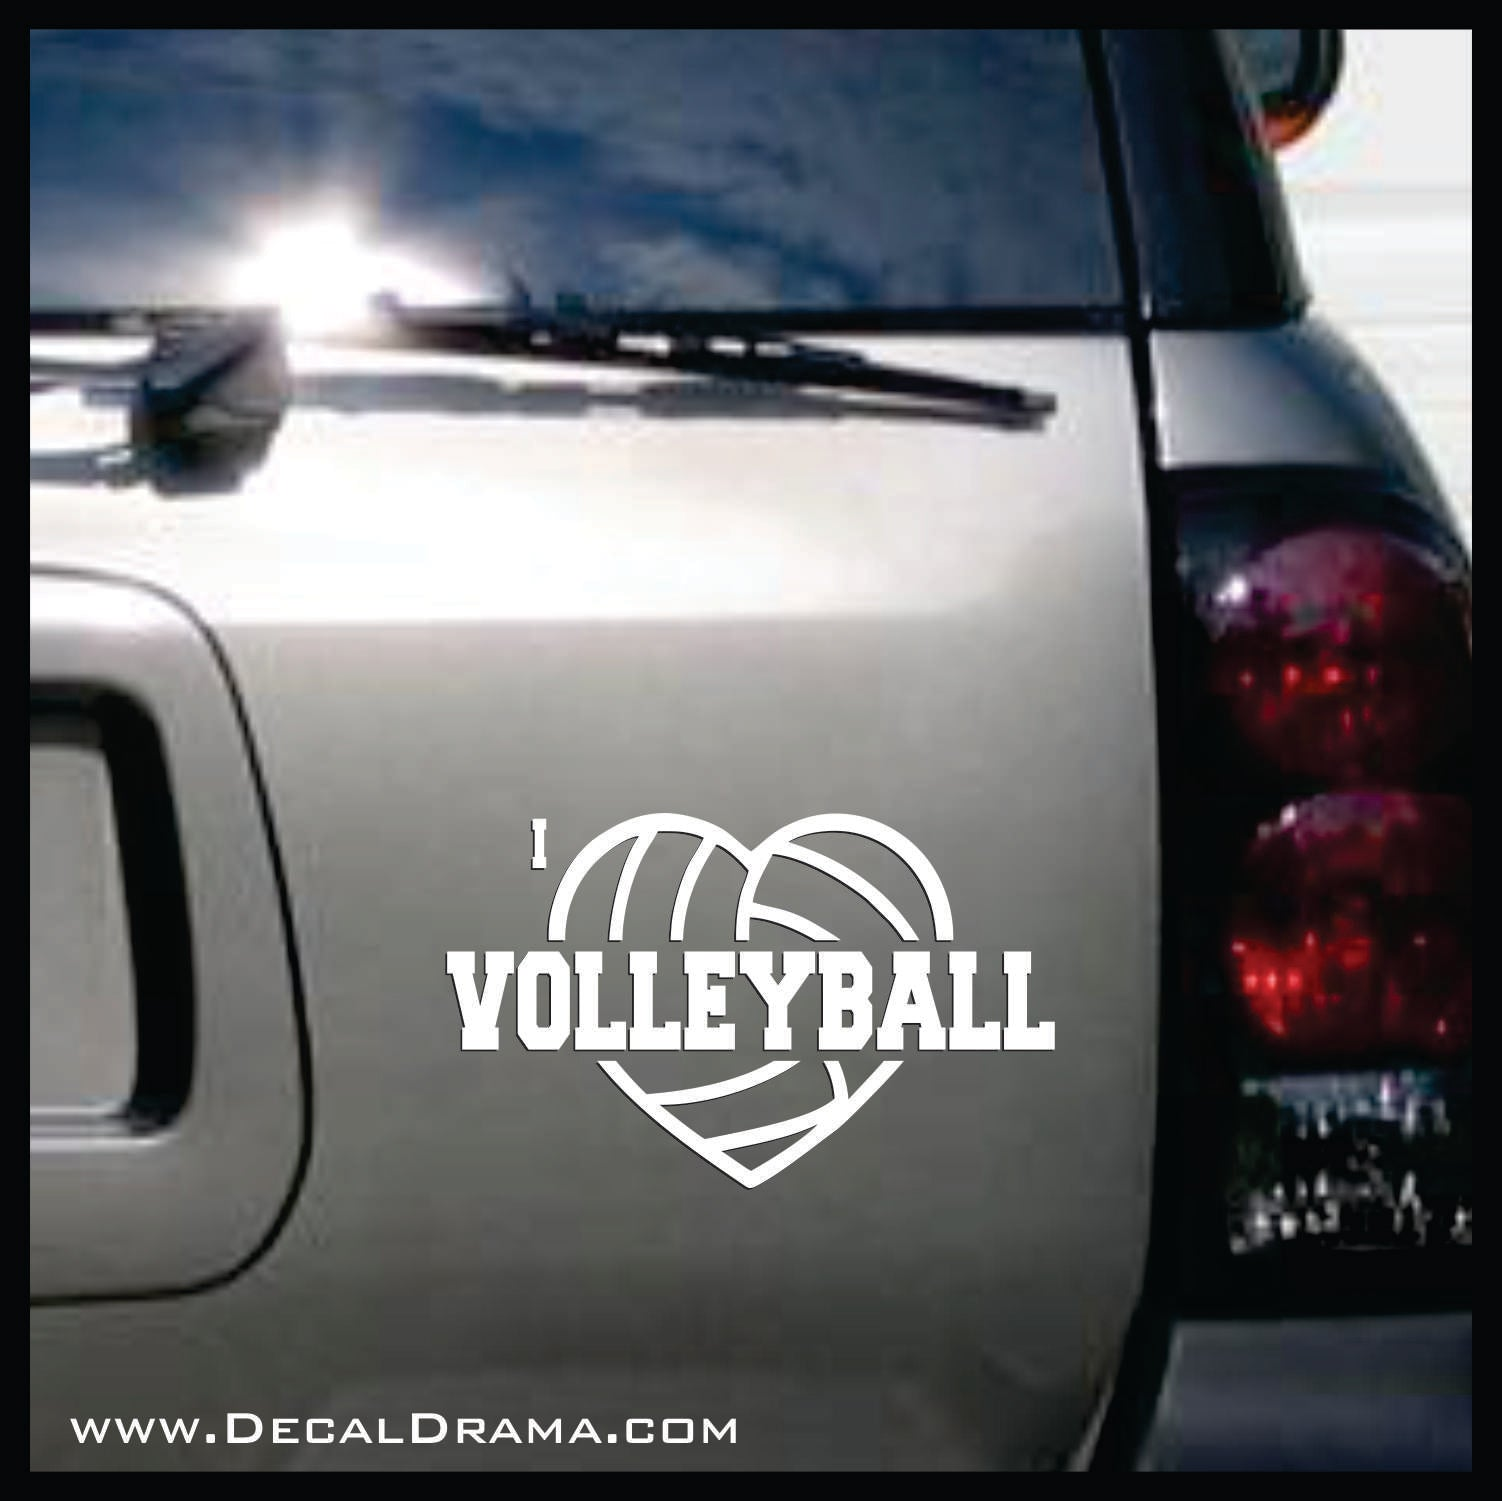 I Heart Volleyball Vinyl Car/Laptop Decal